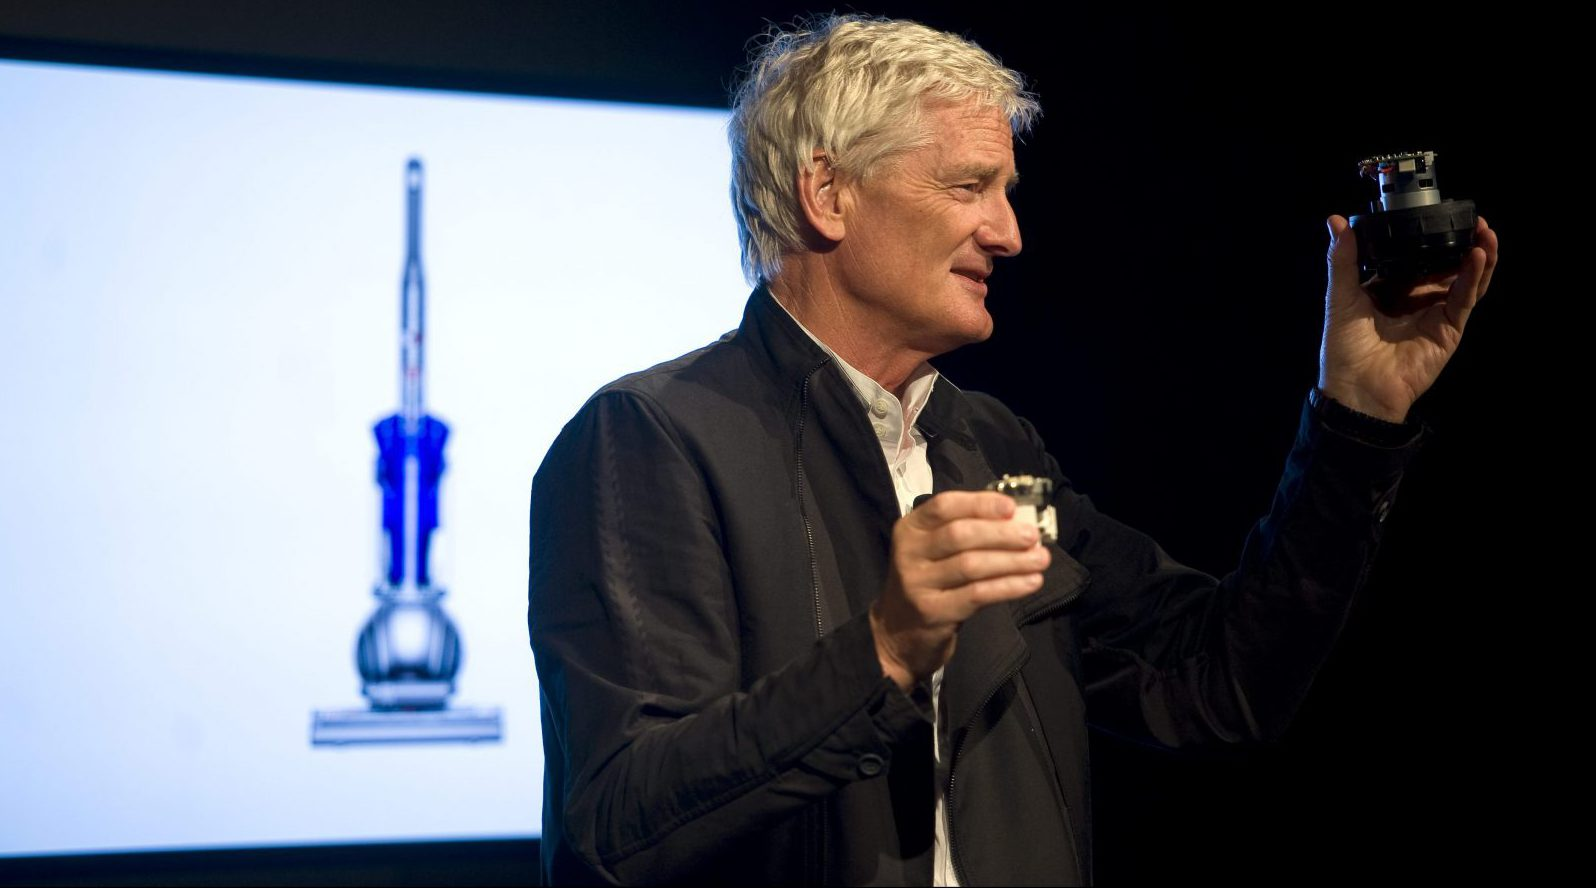 Inventor James Dyson launches the Dyson DC41 Ball vacuum and the Dyson Hot heater fan on Wednesday, Sept., 14, 2011 in New York. Both machines are available in retail stores nationwide this week.